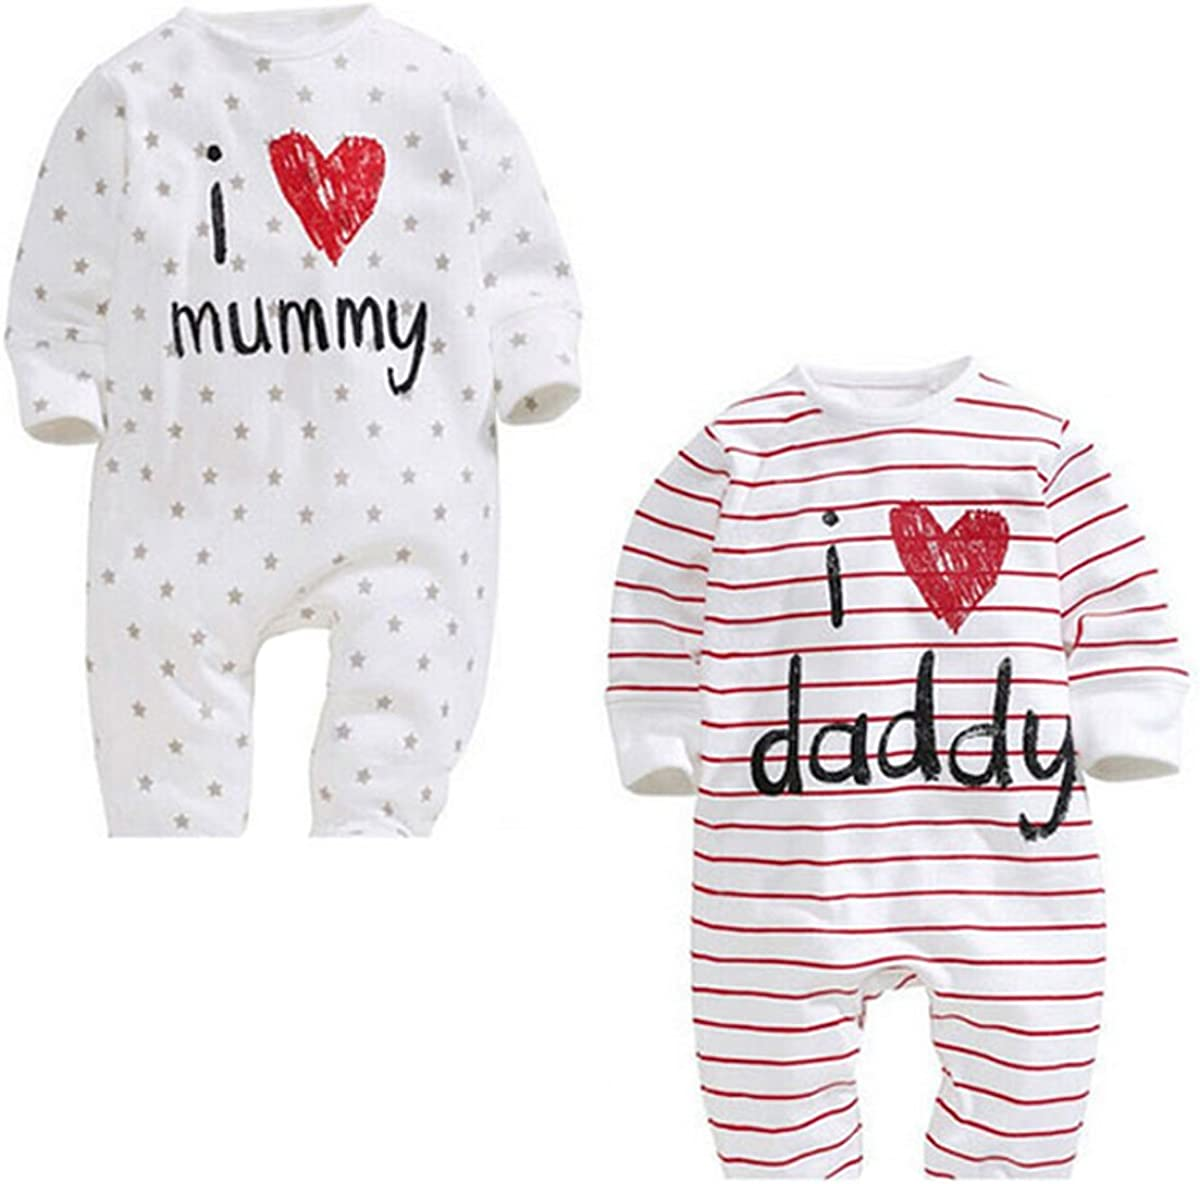 Jumpsuit . I Love Mummy Daddy 0-24month Lanmworn Unisex Baby Infant Cotton Romper Wrapped Triangle Bodysuit Newborn